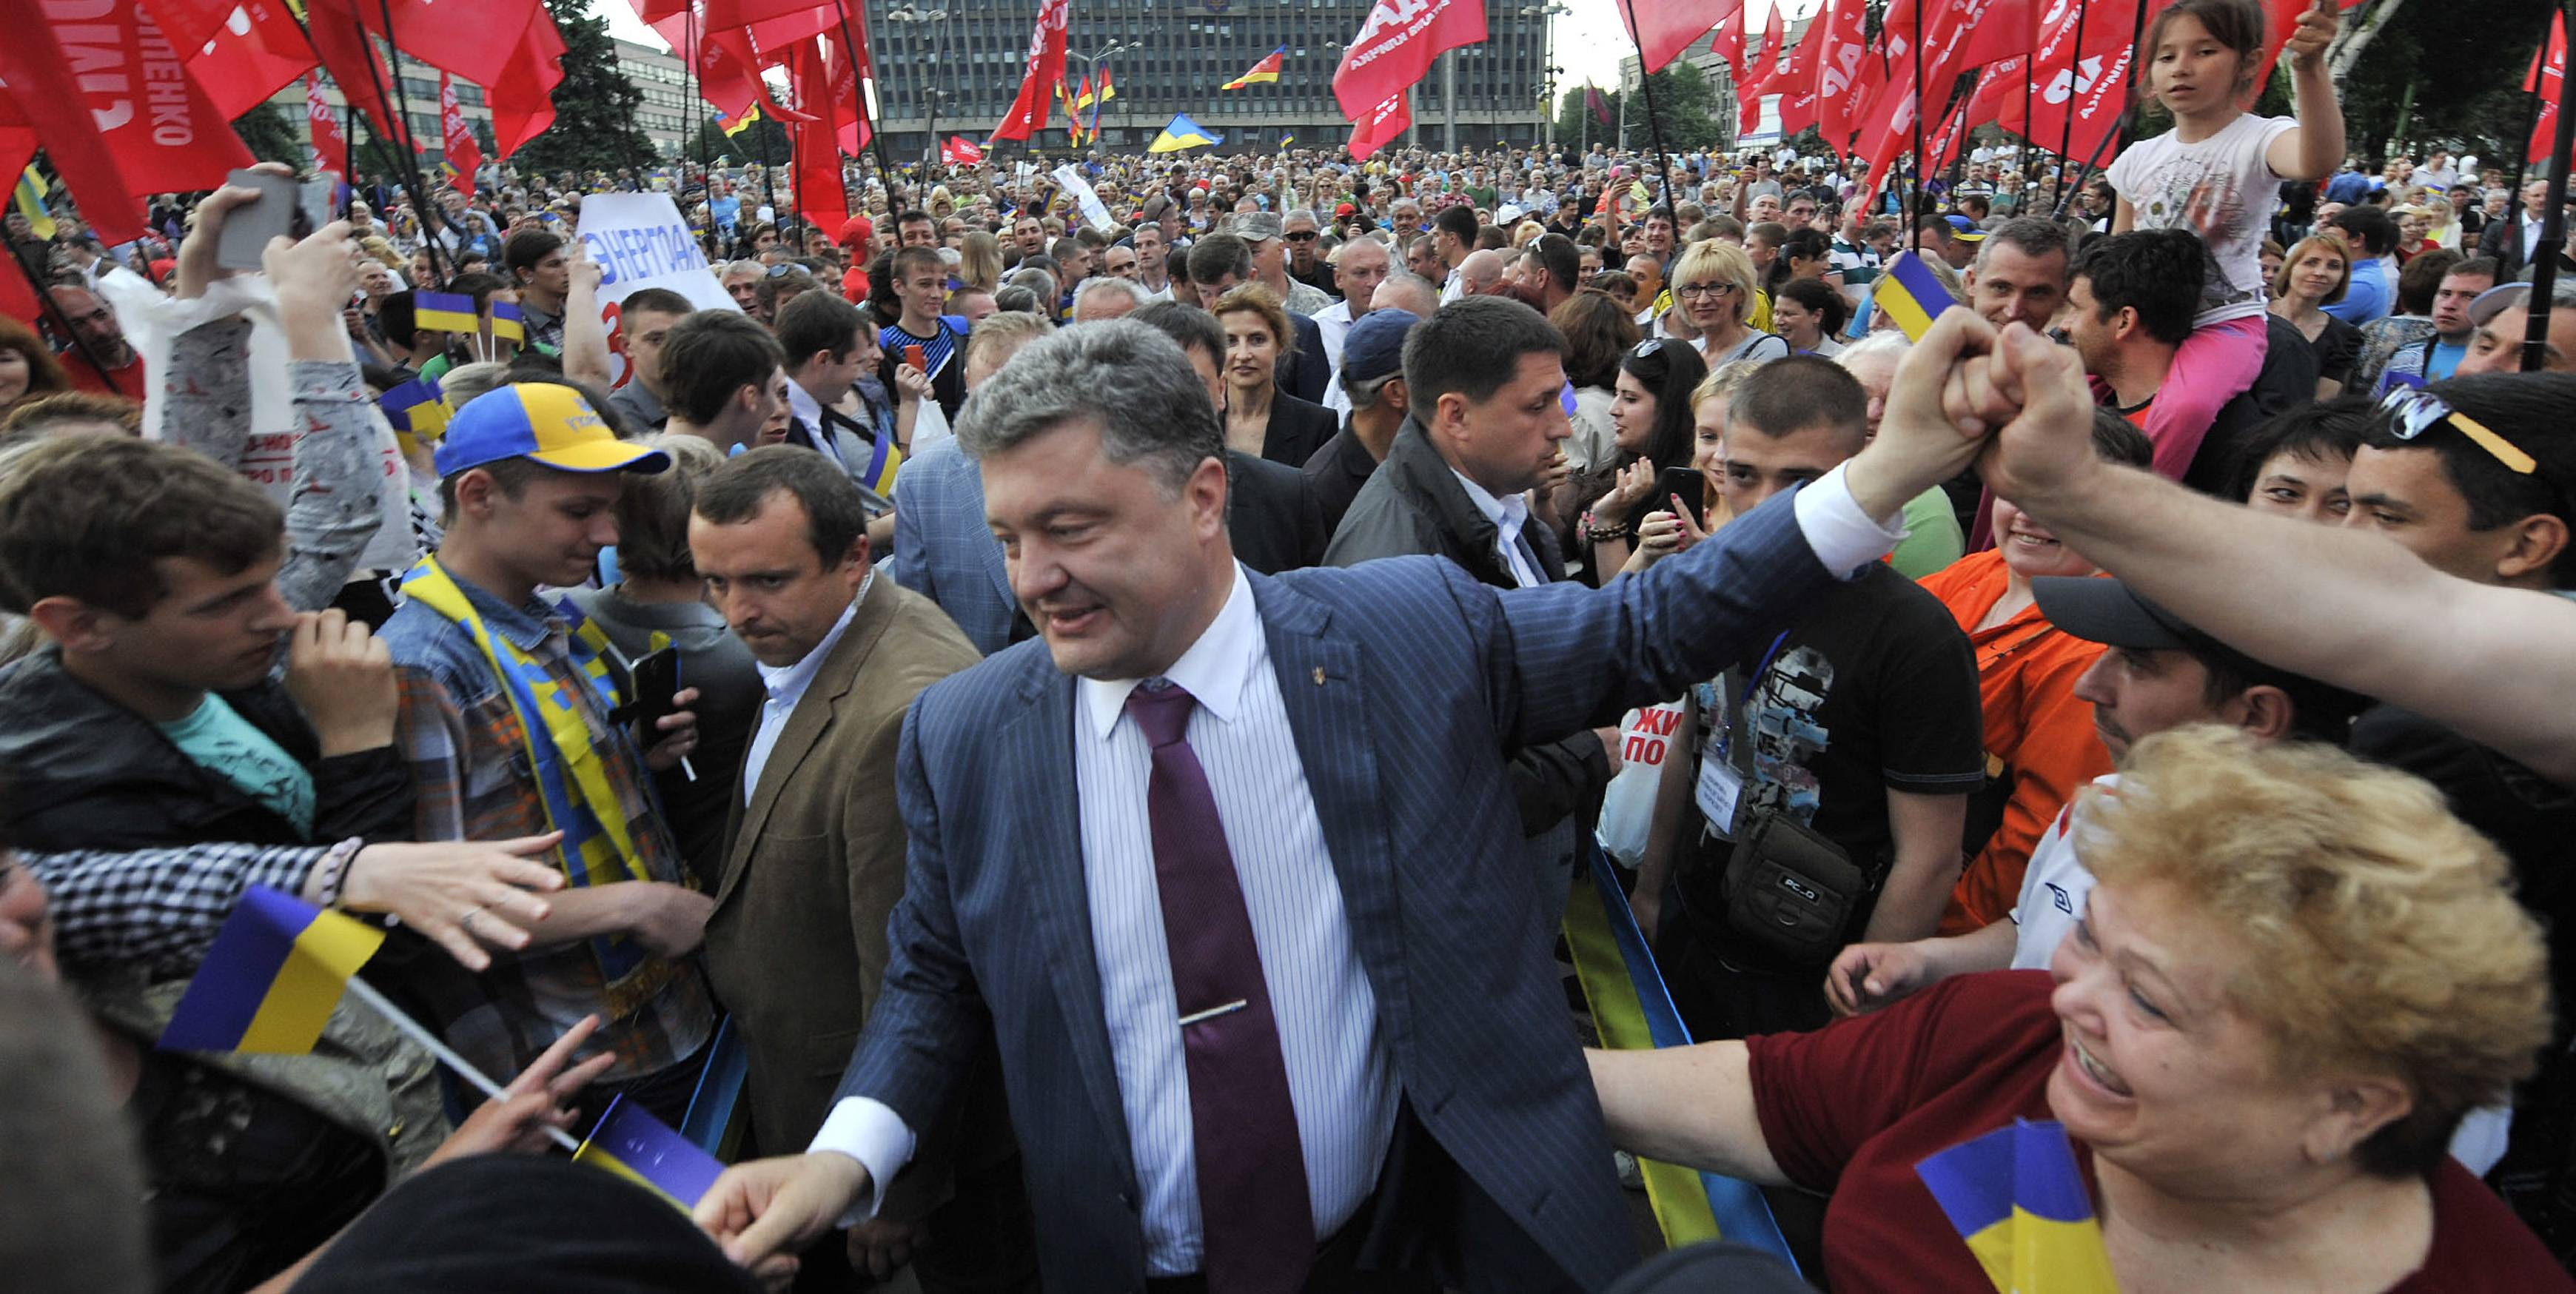 Ukrainian presidential candidate Petro Poroshenko, center, is welcomed by his supporters during a rally in Zaporizhzhia, Ukraine, Sunday. The presidential vote in Ukraine is scheduled for May 25.